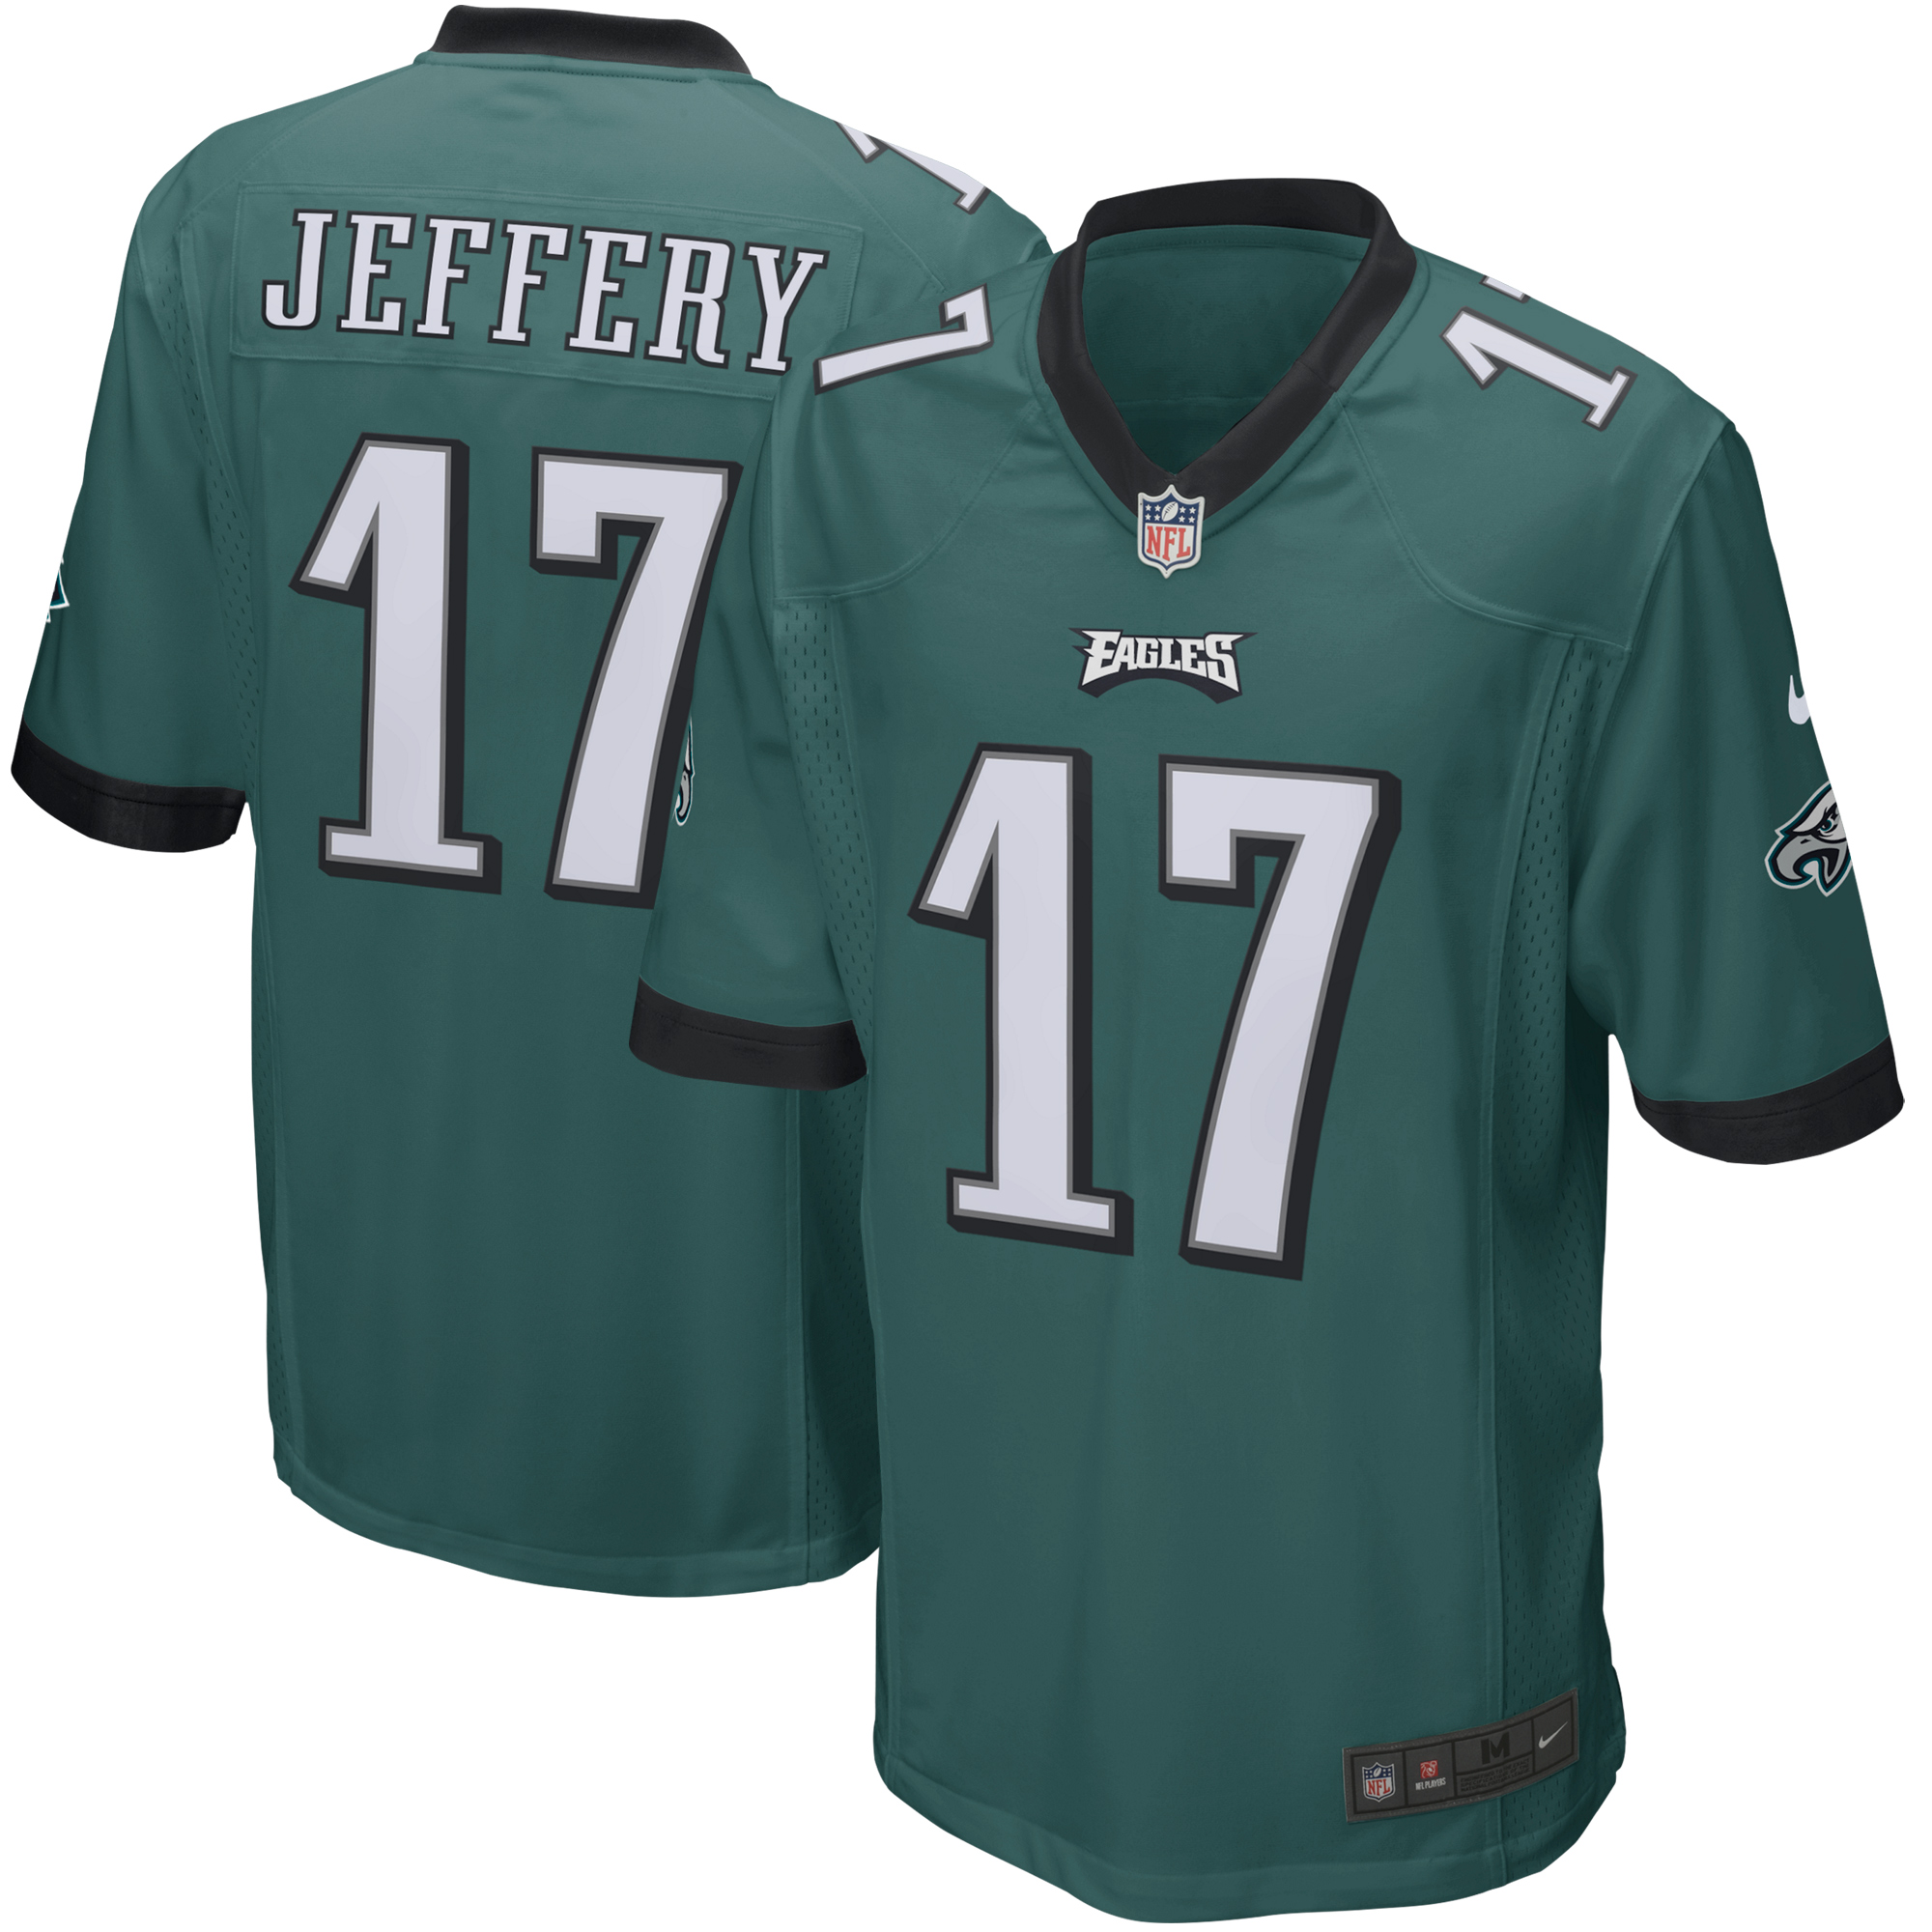 Alshon Jeffery Philadelphia Eagles Nike Youth Game Jersey - Green